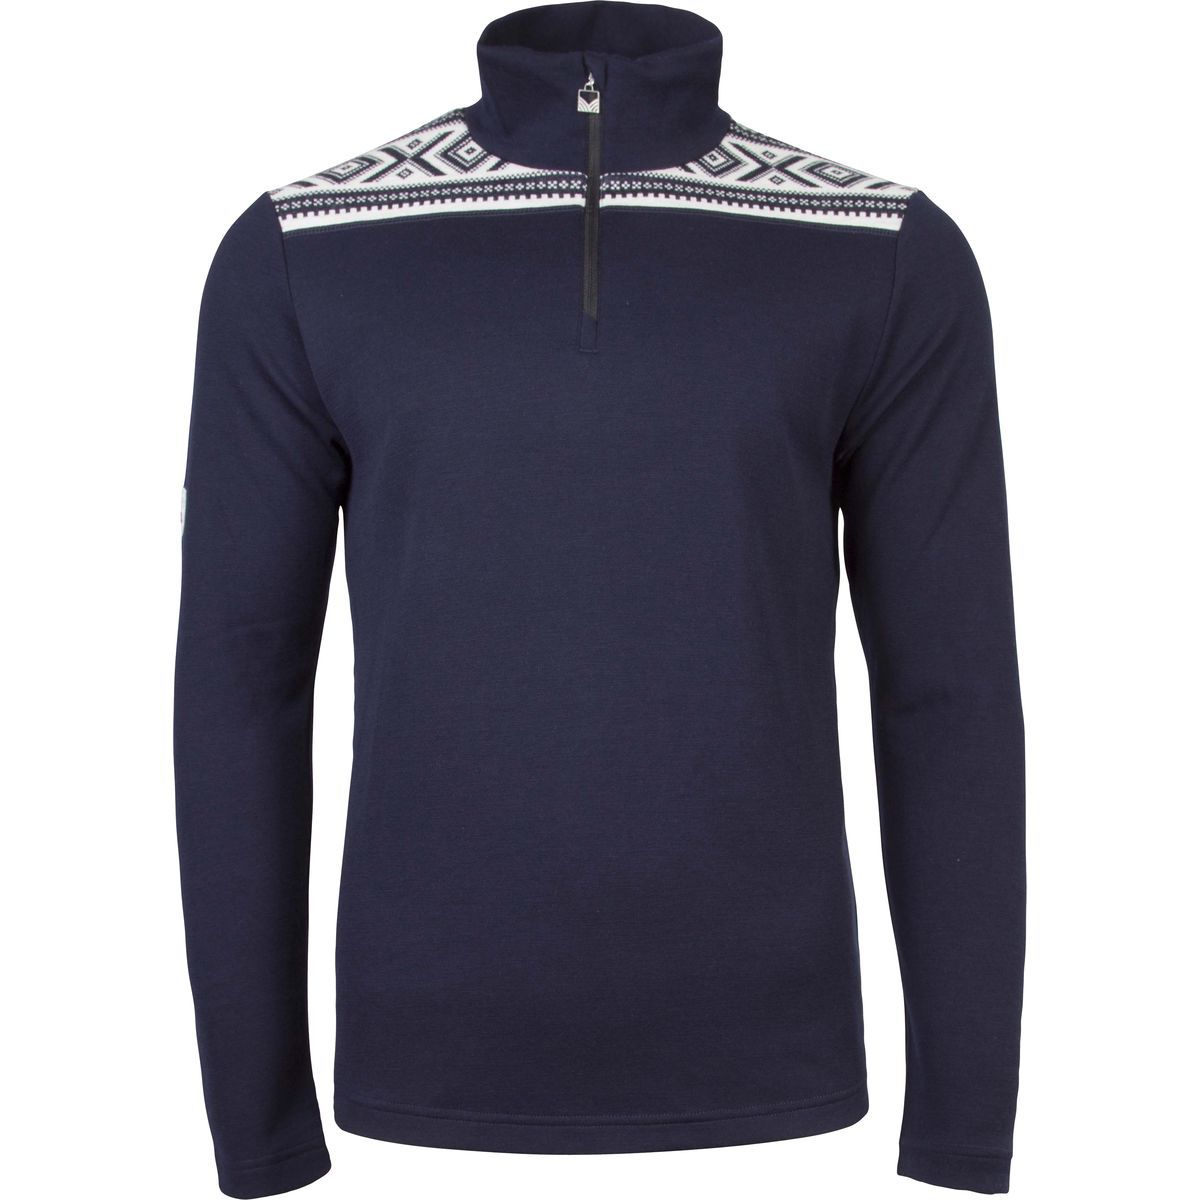 Dale of Norway Cortina Basic Masculine Sweater - Men's